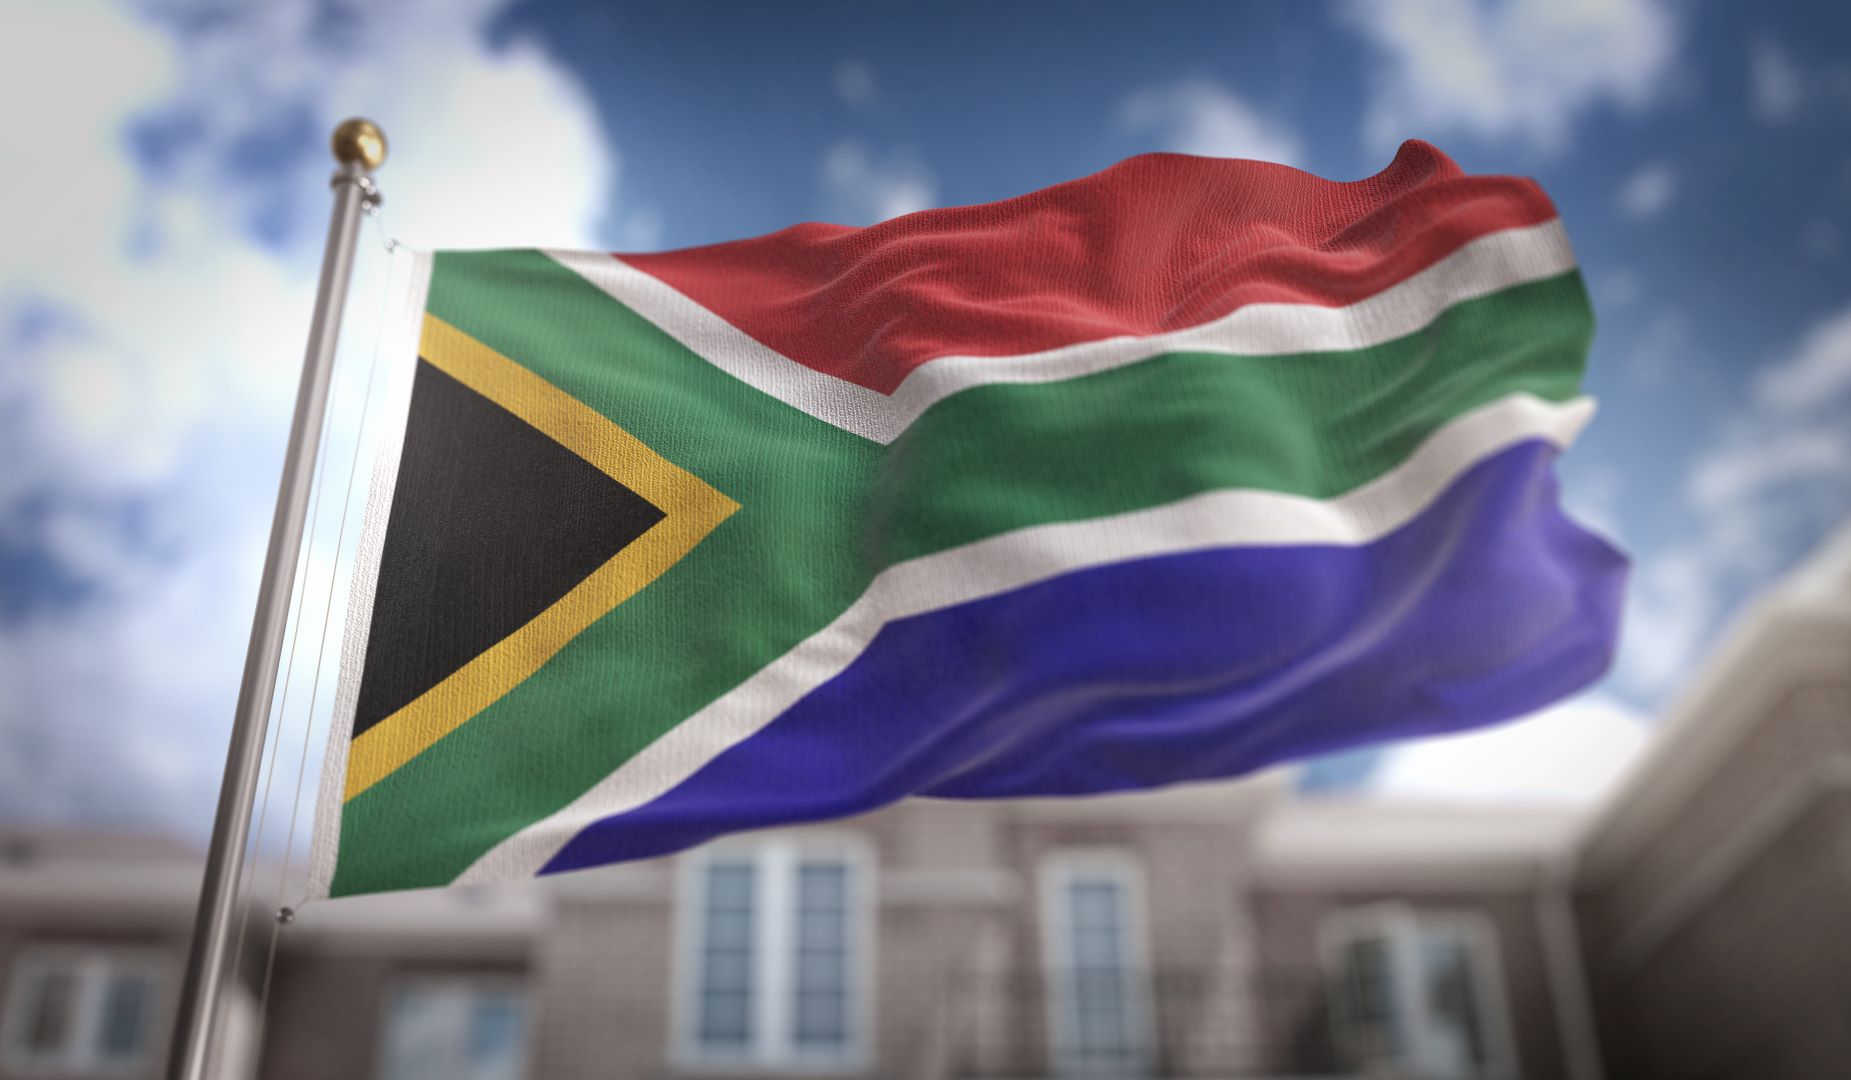 South Africa: Govt proposes ZAR38.9bn fiscal relief package for Covid, riots